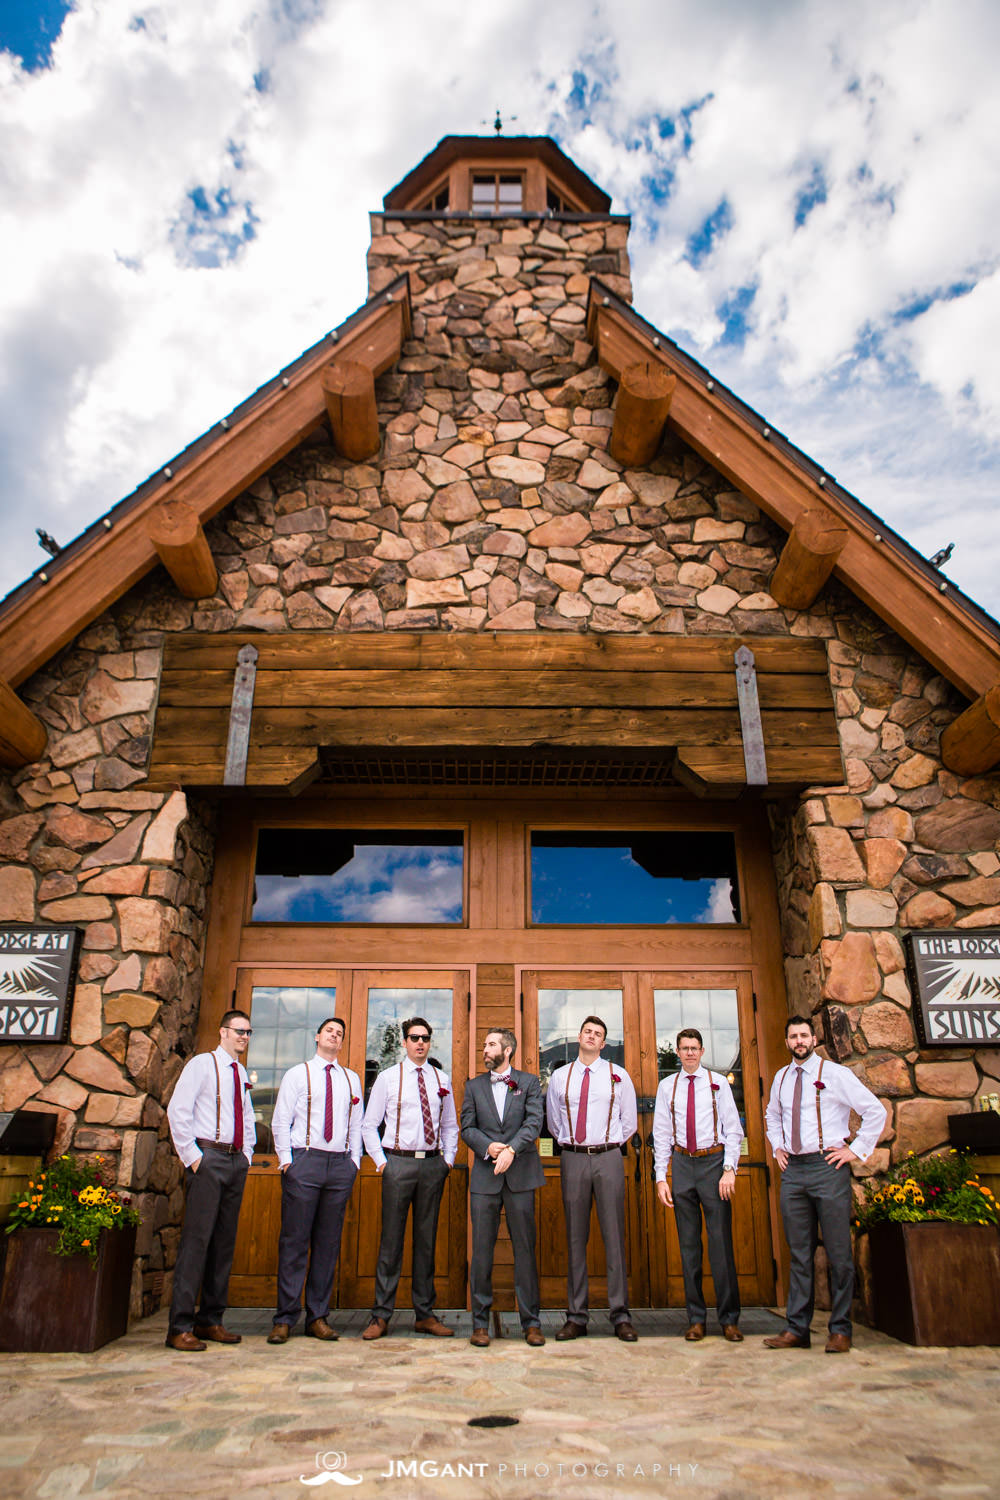 Wedding party photos for a Winter Park, mountain wedding at the Lodge at Sunspot, photographed by JMGant Photography